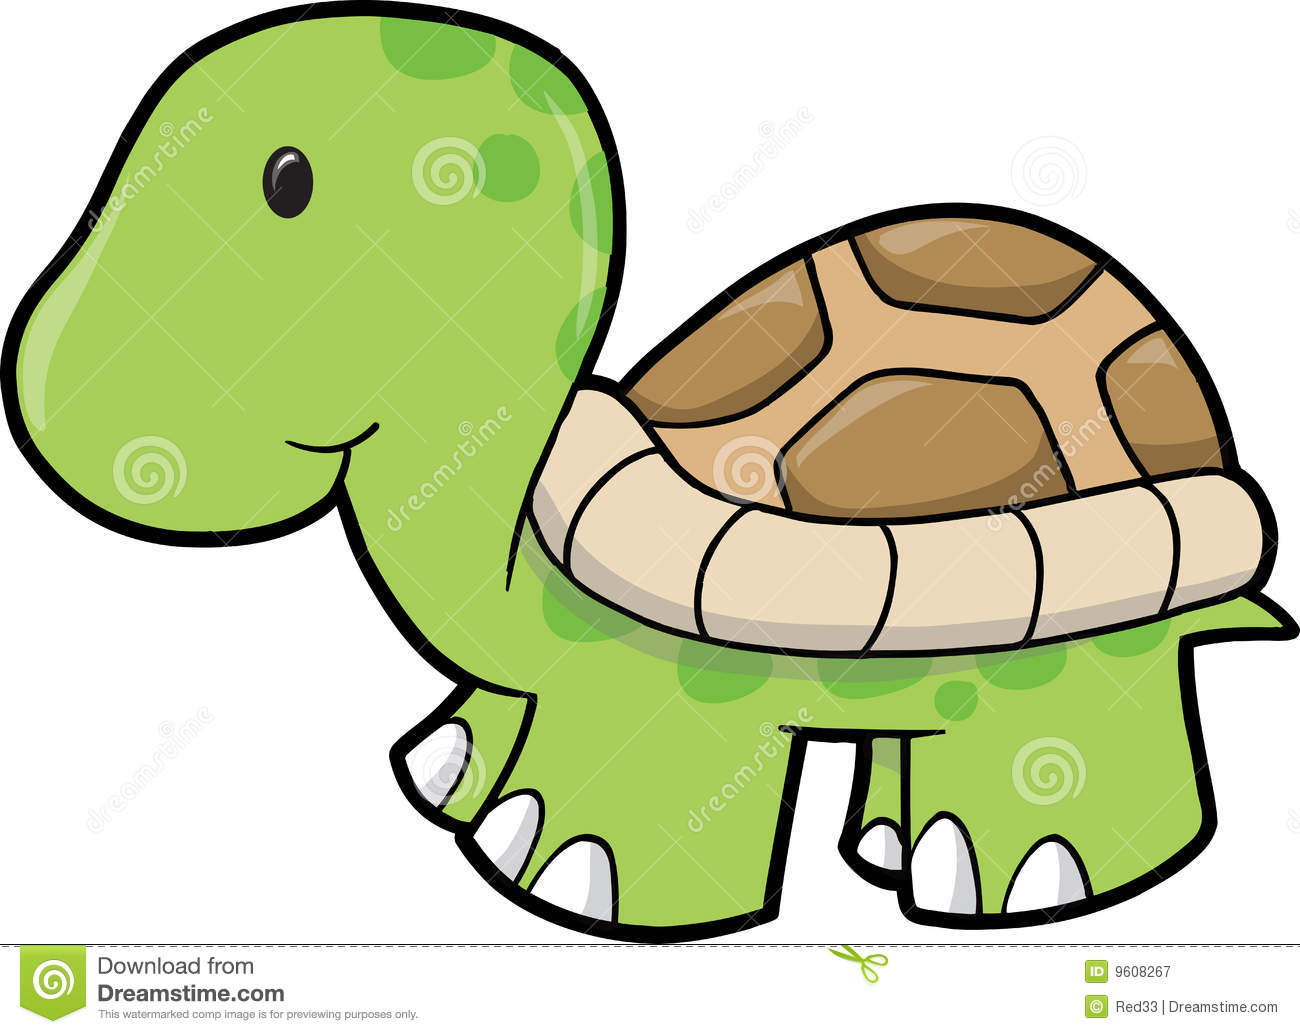 Animated Turtle Clipart | Free download on ClipArtMag